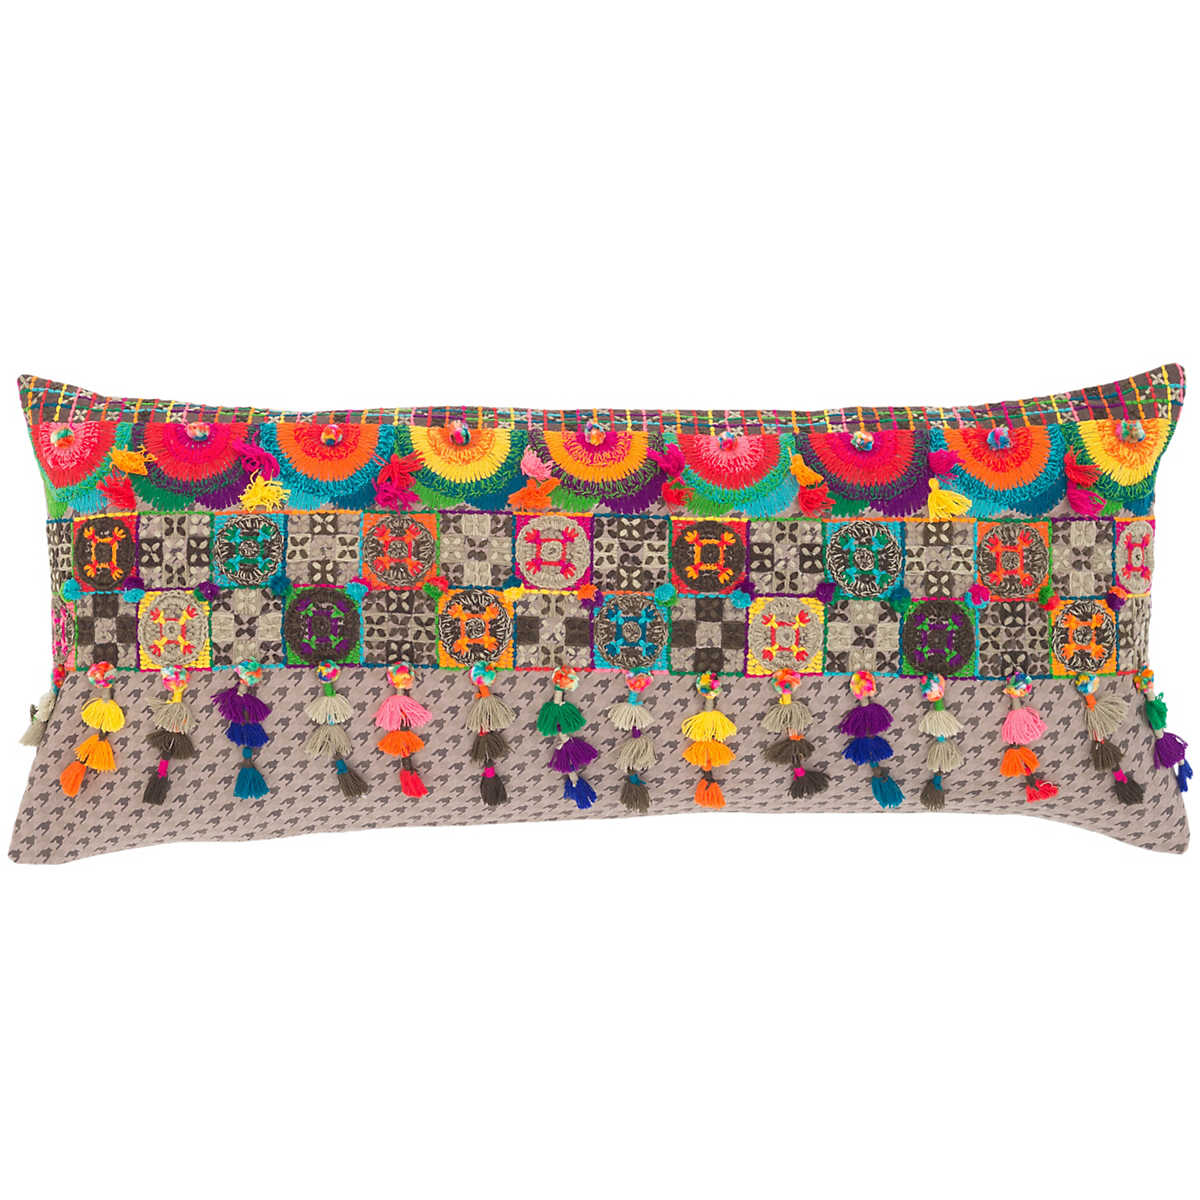 Boho Embroidered Decorative Pillow The Outlet